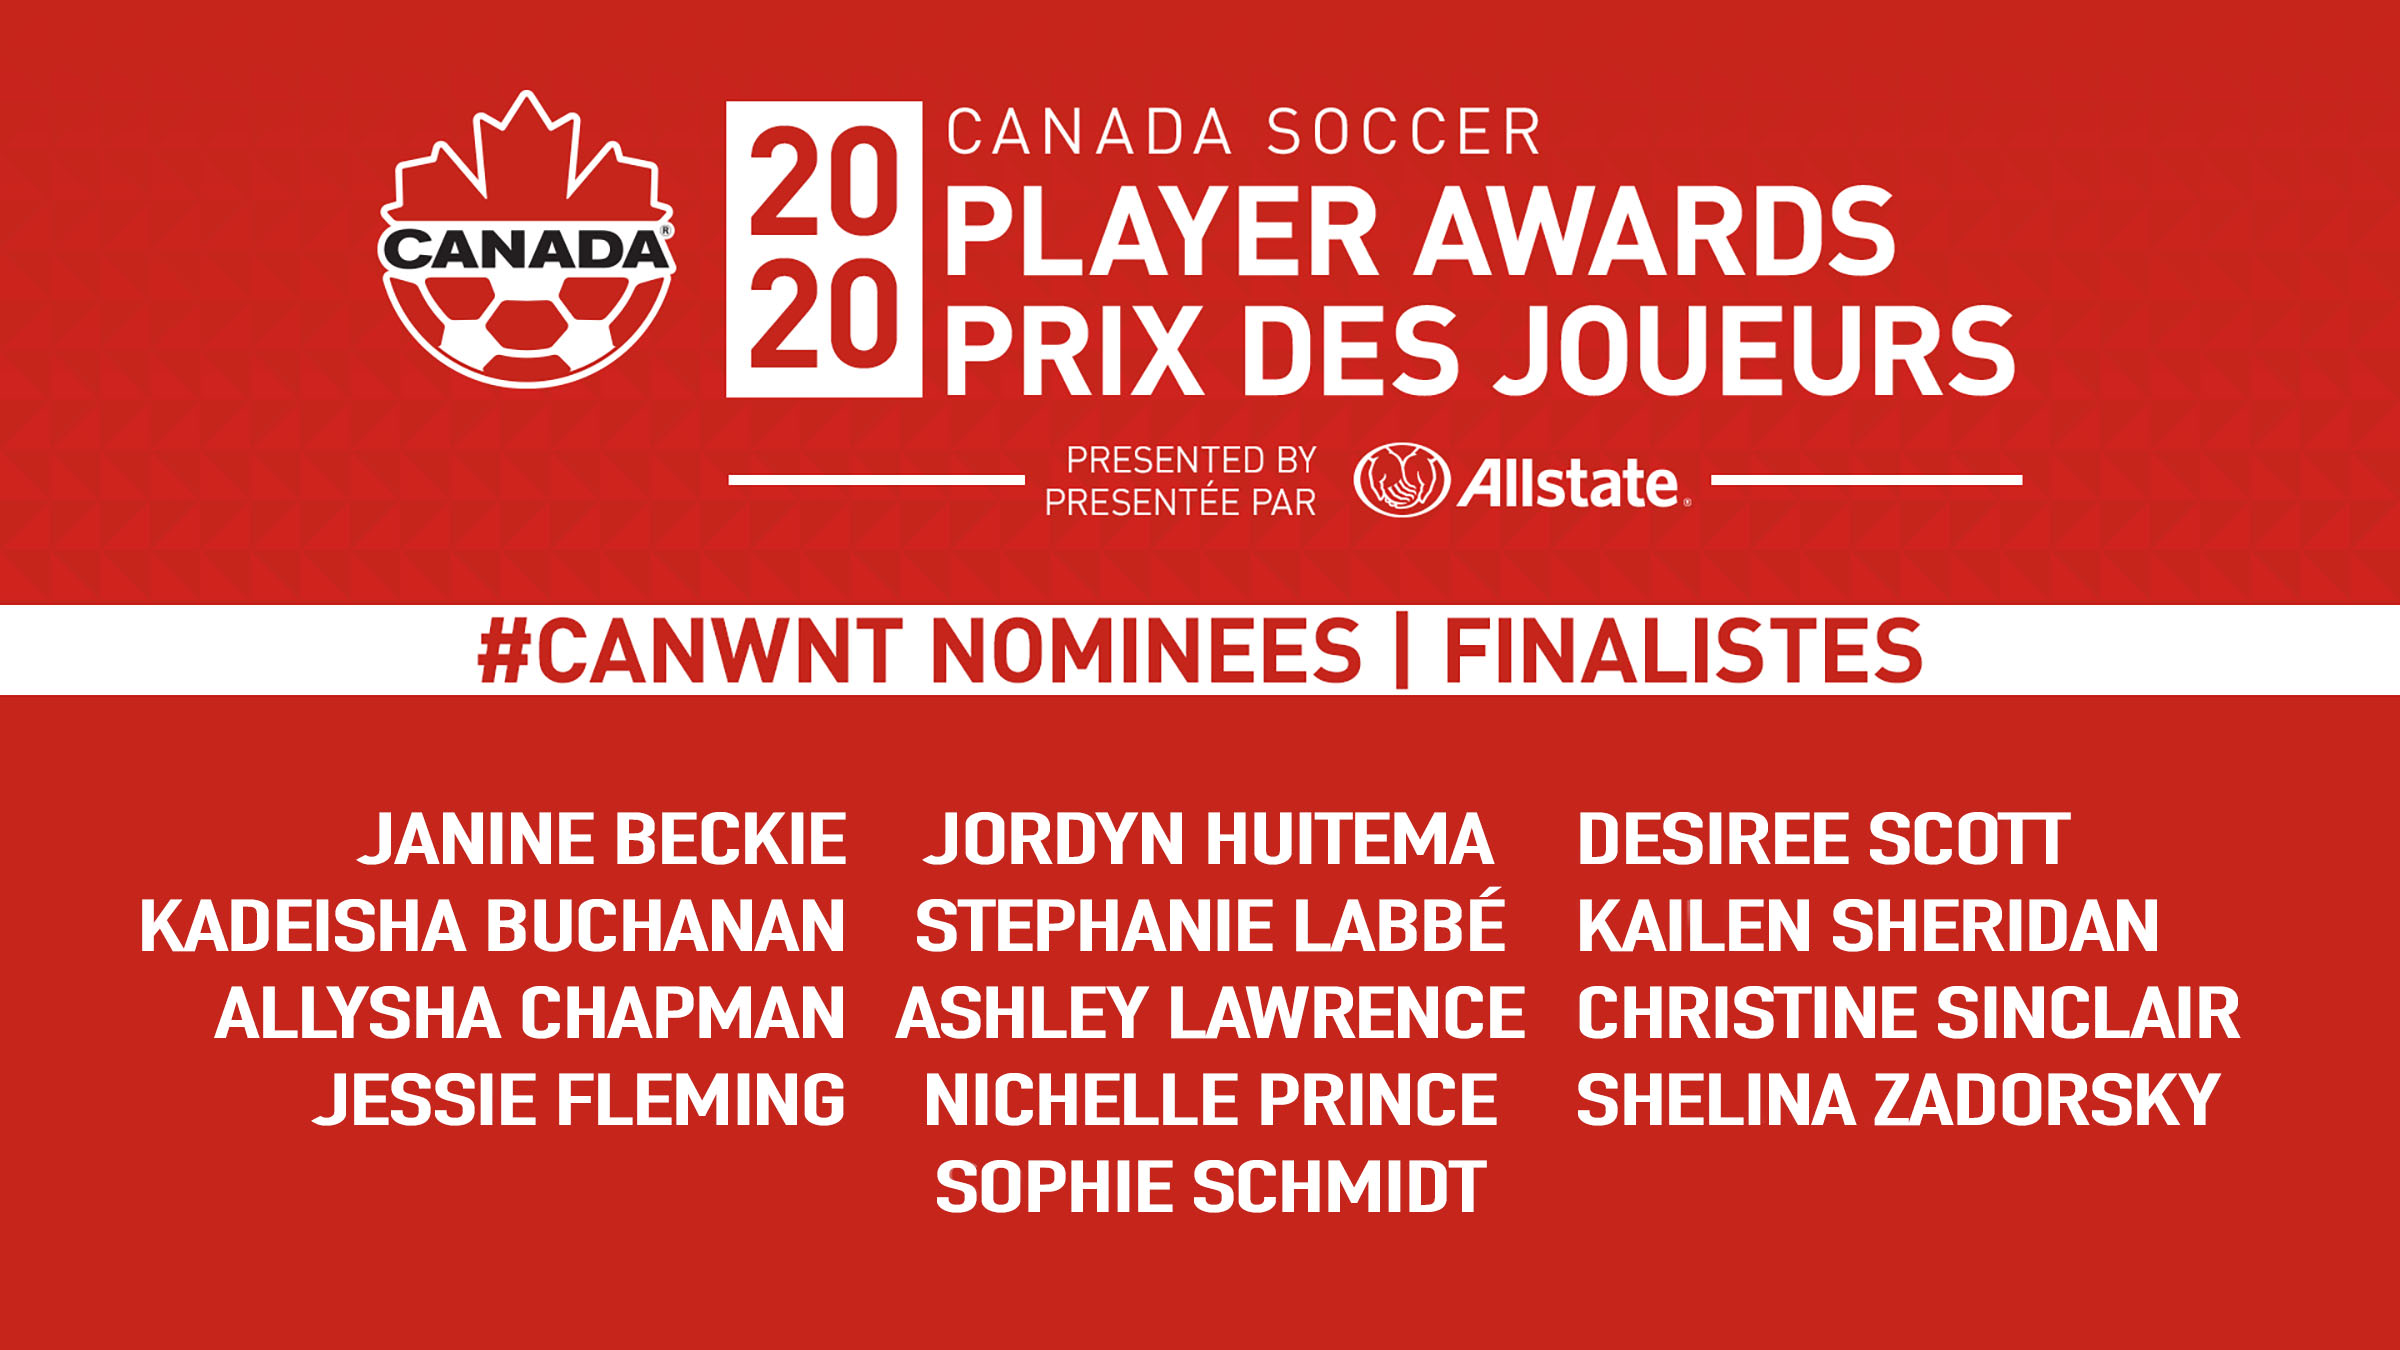 2020 Canada Soccer Player Award nominees